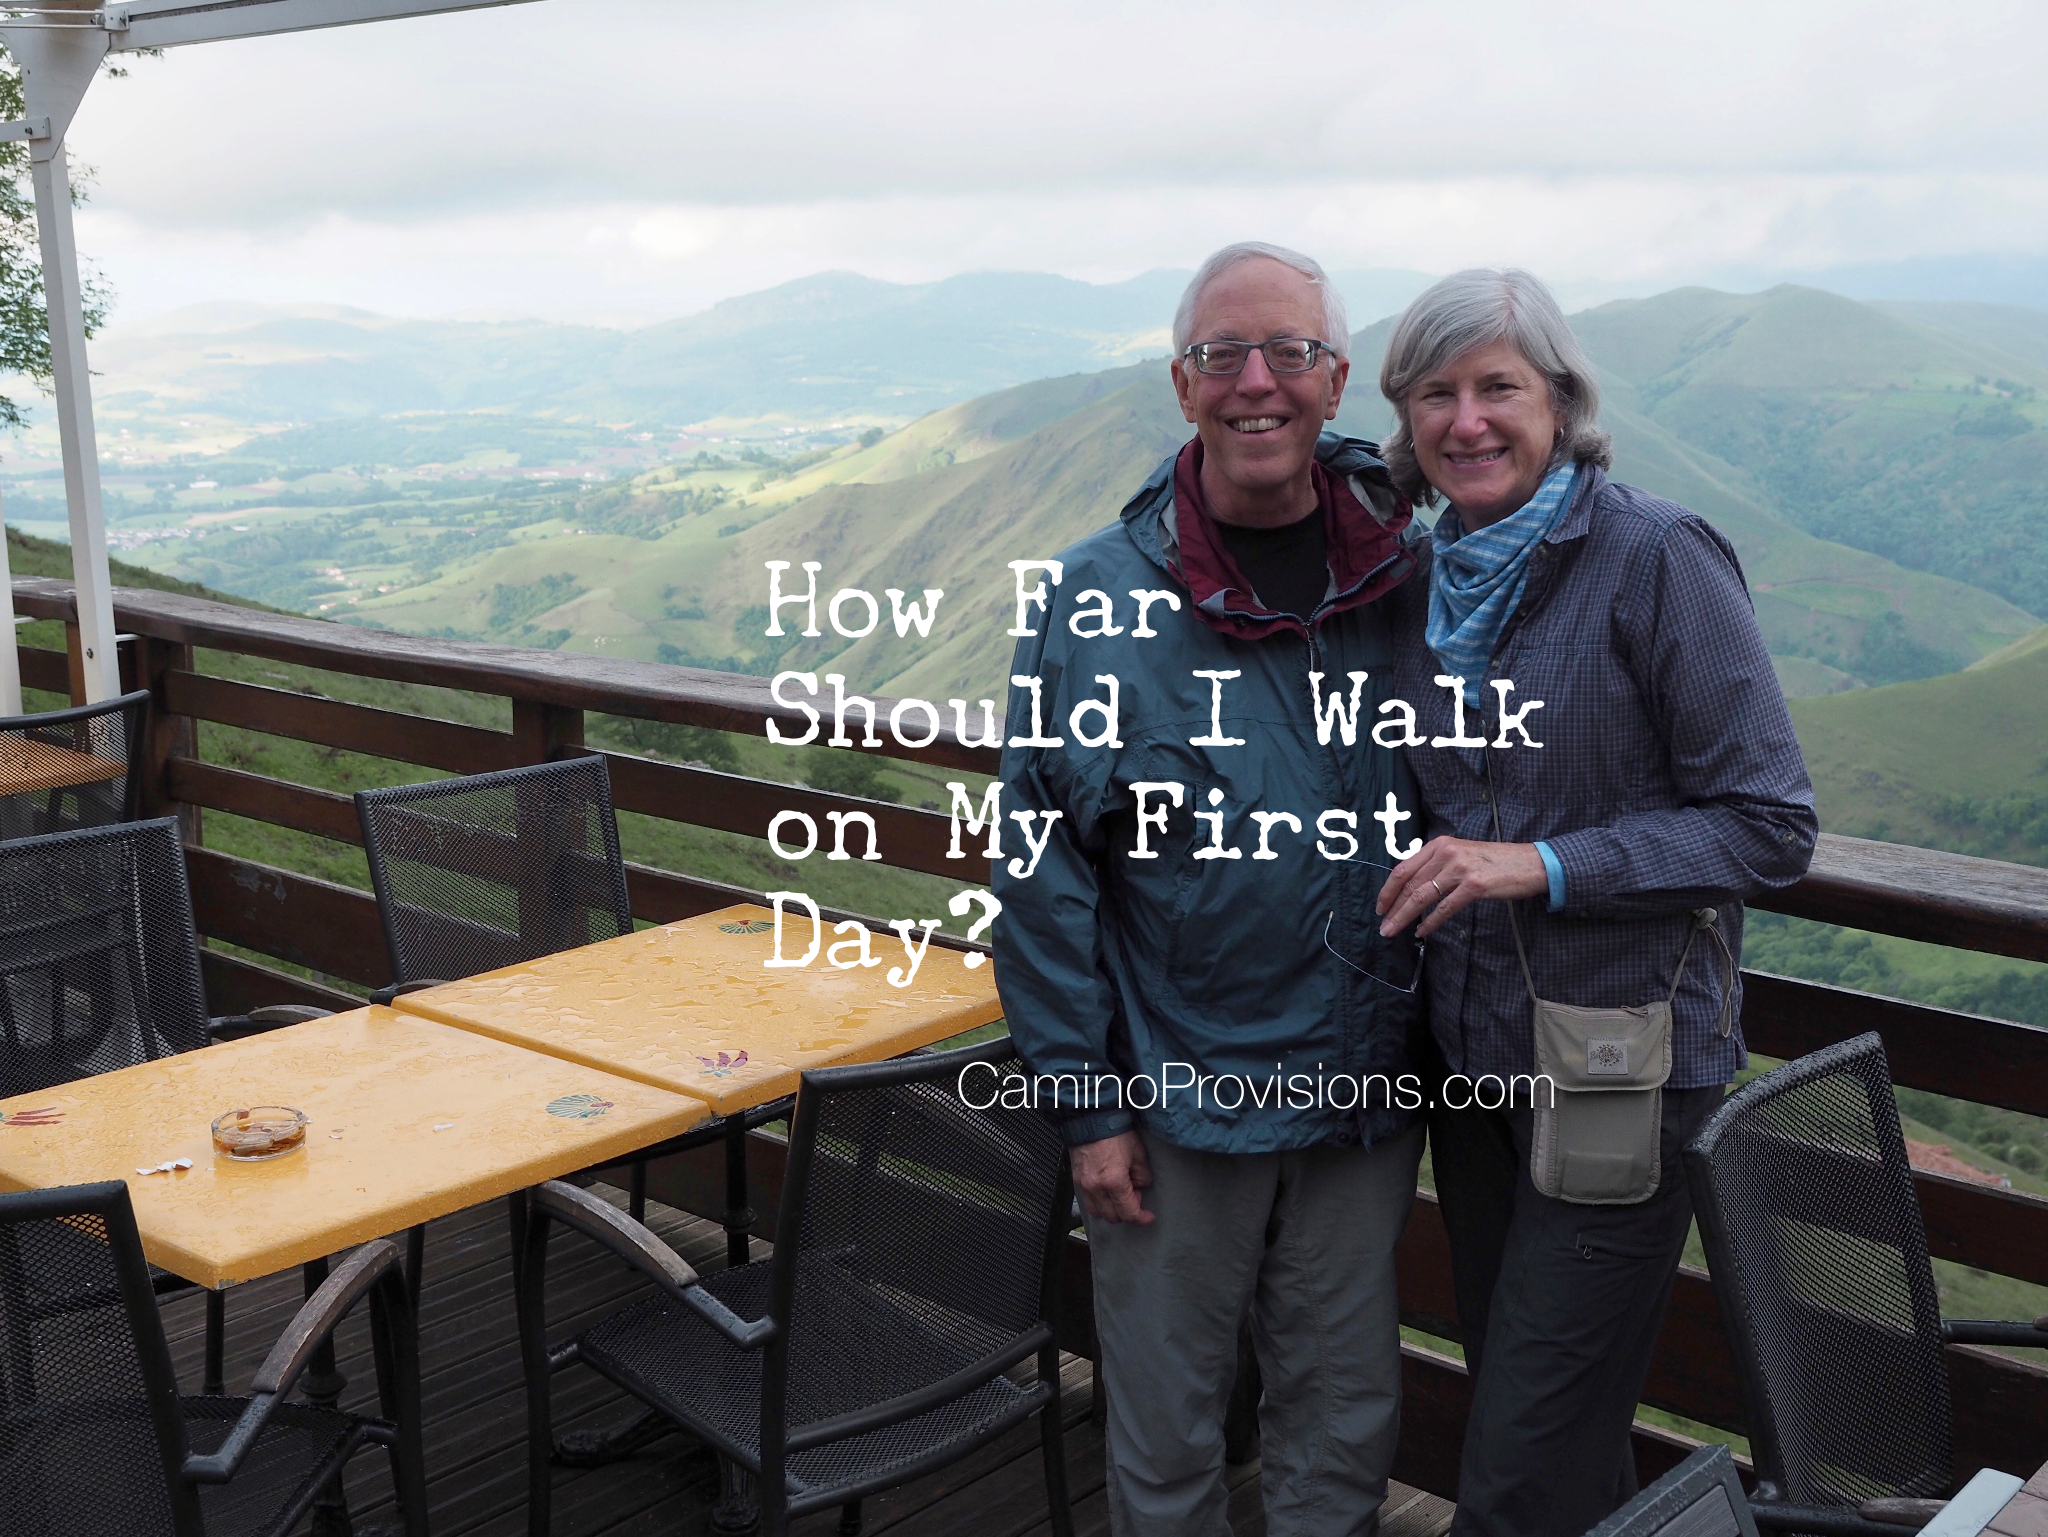 My husband Wick and I enjoyed the view and a rest after the steep climb to Refugio Orisson on a cold, rainy day in mid-May.     Crossing the Pyrenees is one of our favorite stretches of the Camino, but the next day it snowed on us on the way to Roncesvalles!